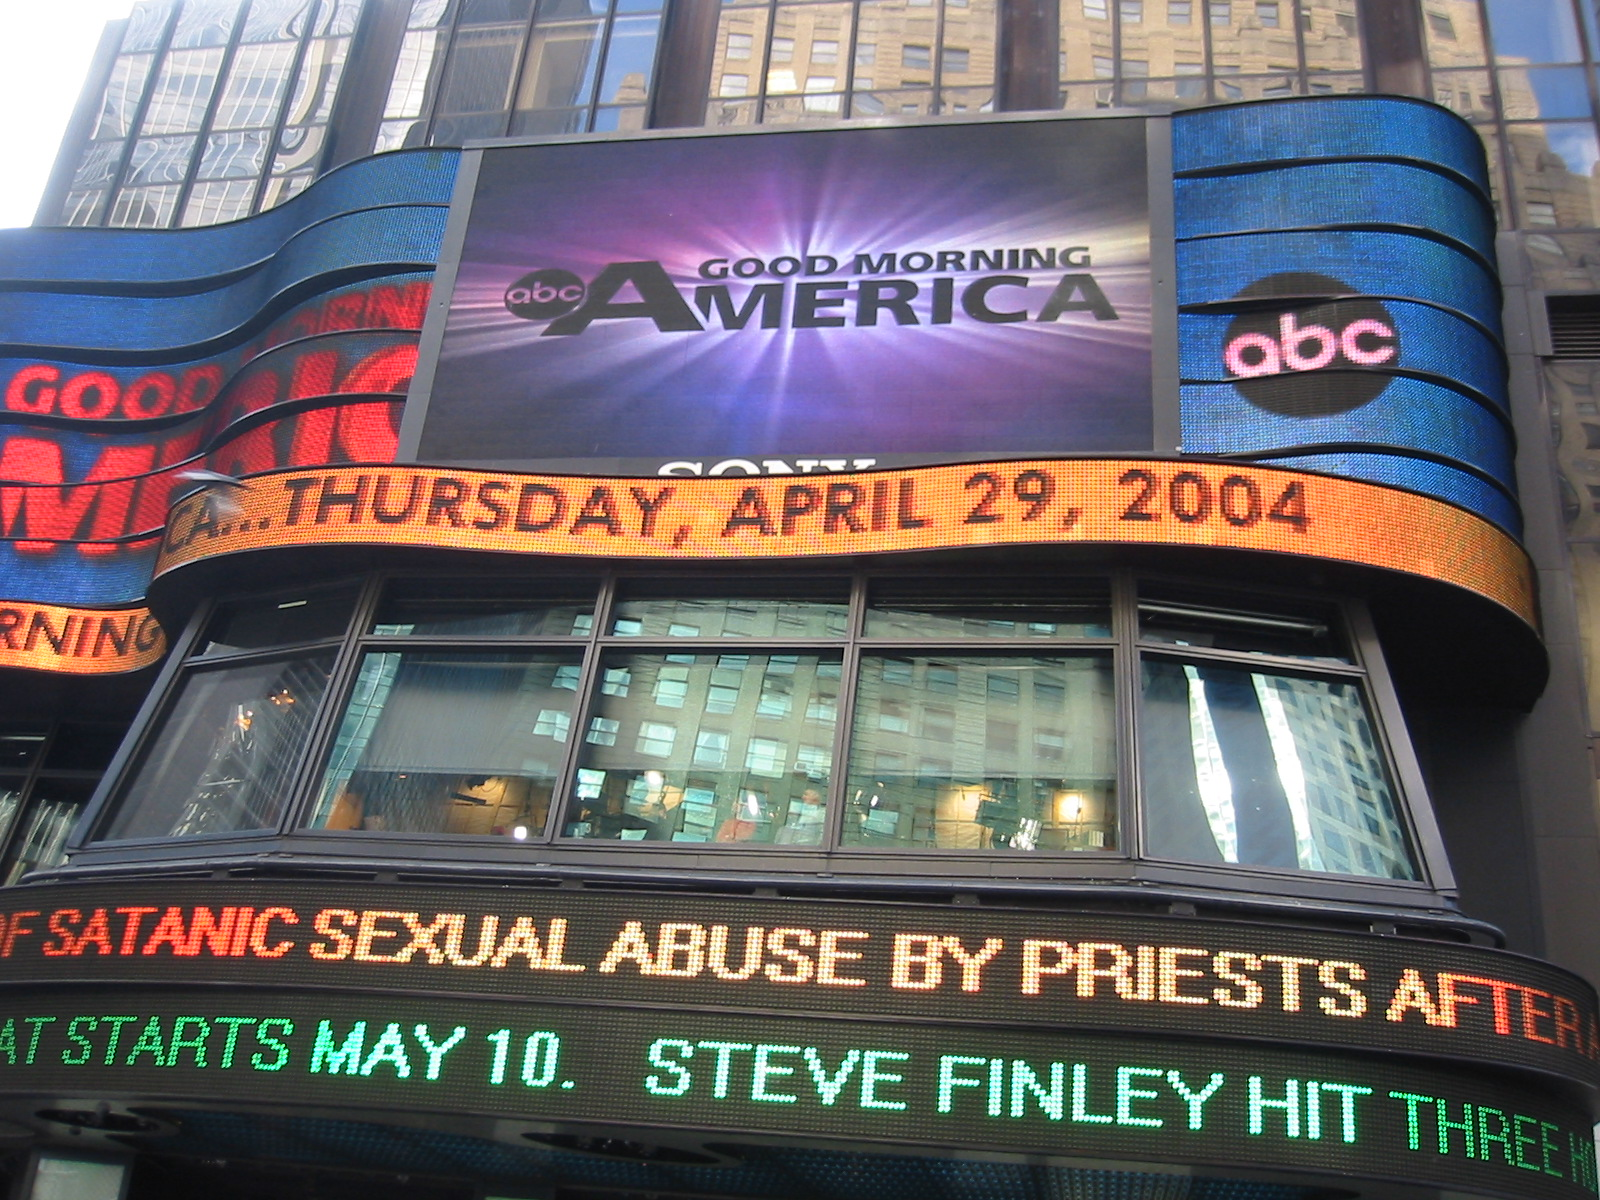 File:ABC - GOOD MORNING AMERICA.jpg - Wikipedia, the free encyclopedia